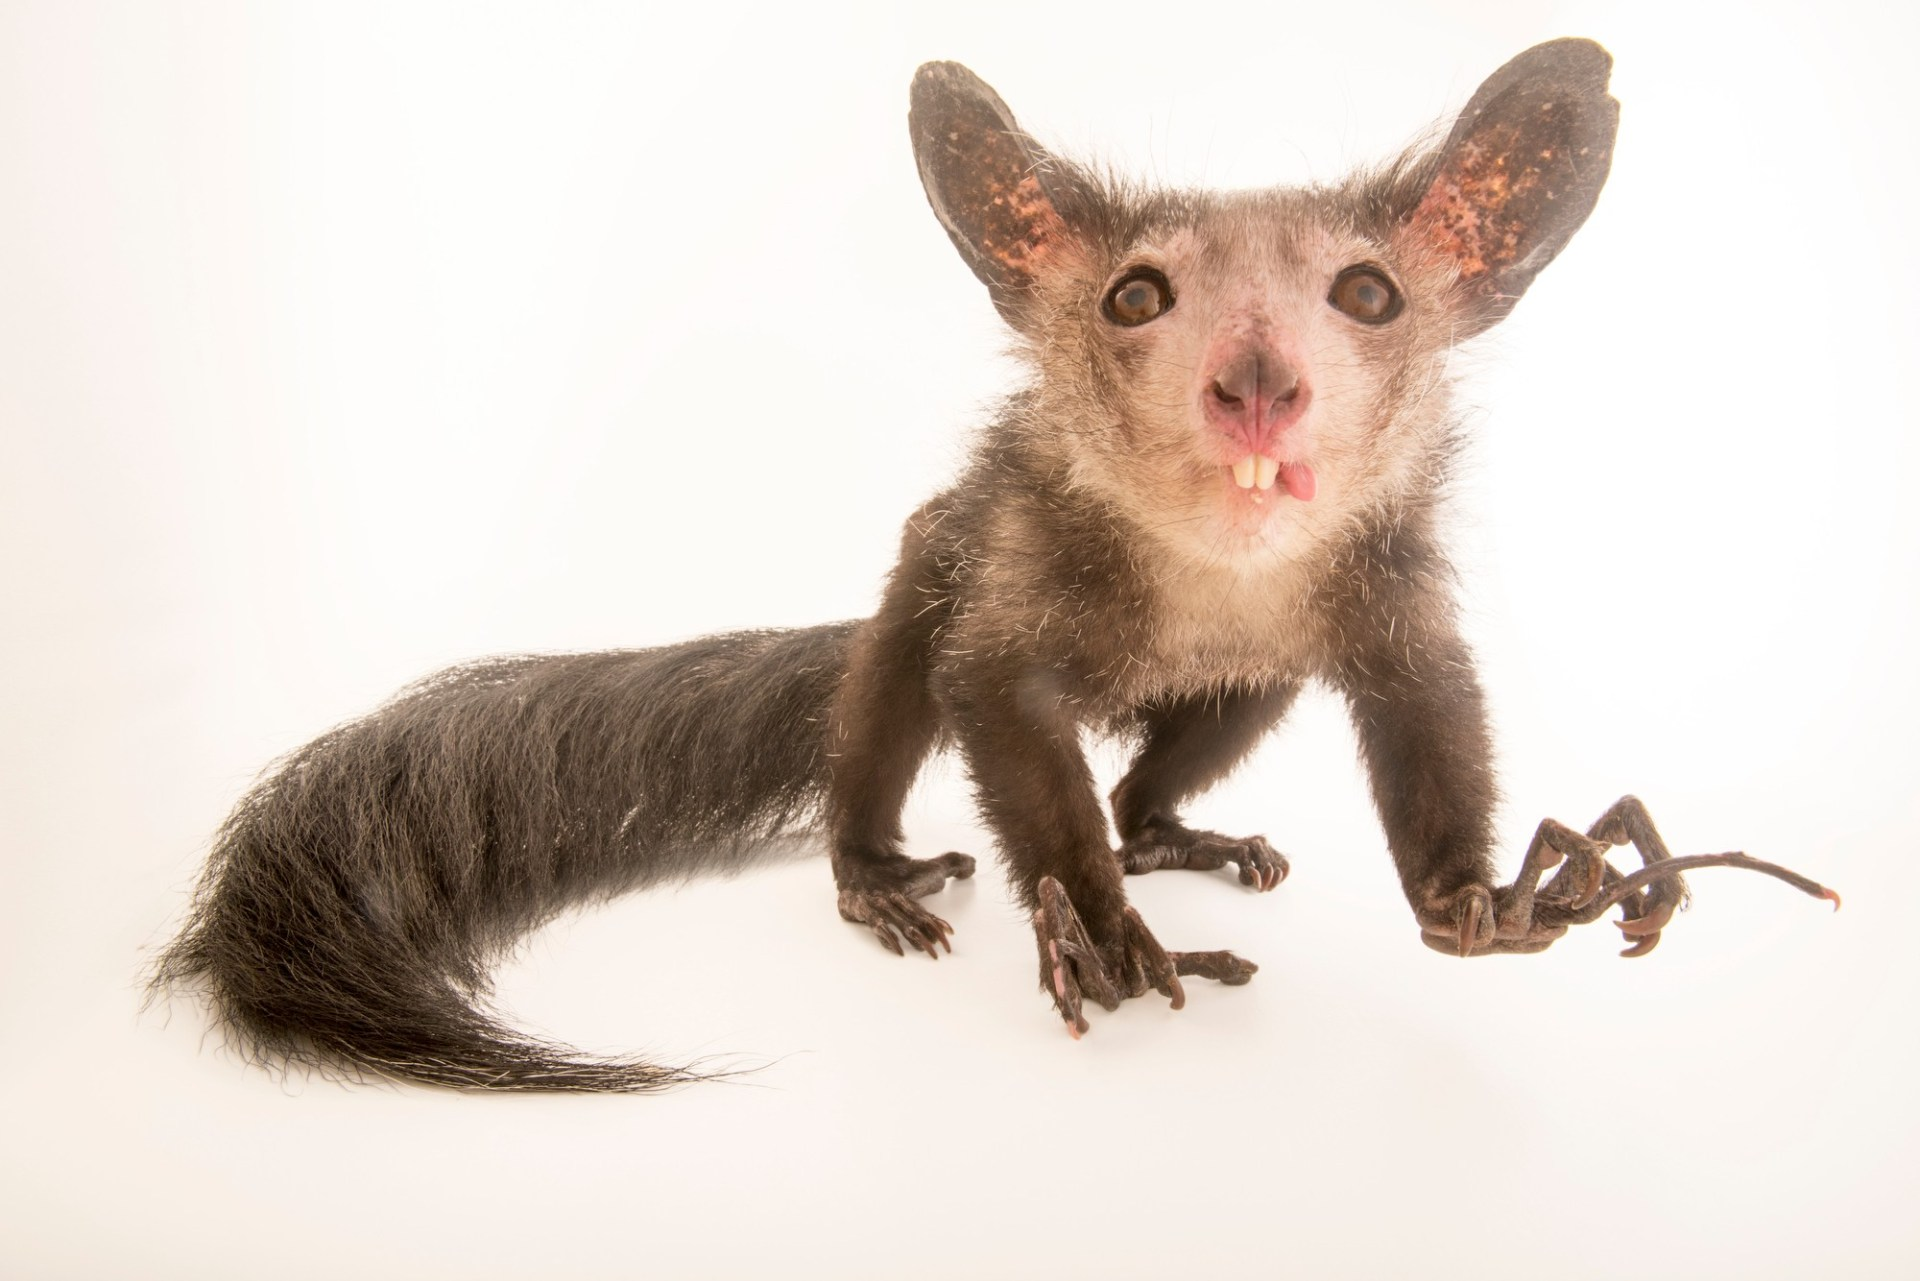 Photo: An aye-aye (Daubentonia madagascariensis) named Endora at Duke Lemur Center in Durham, North Carolina.